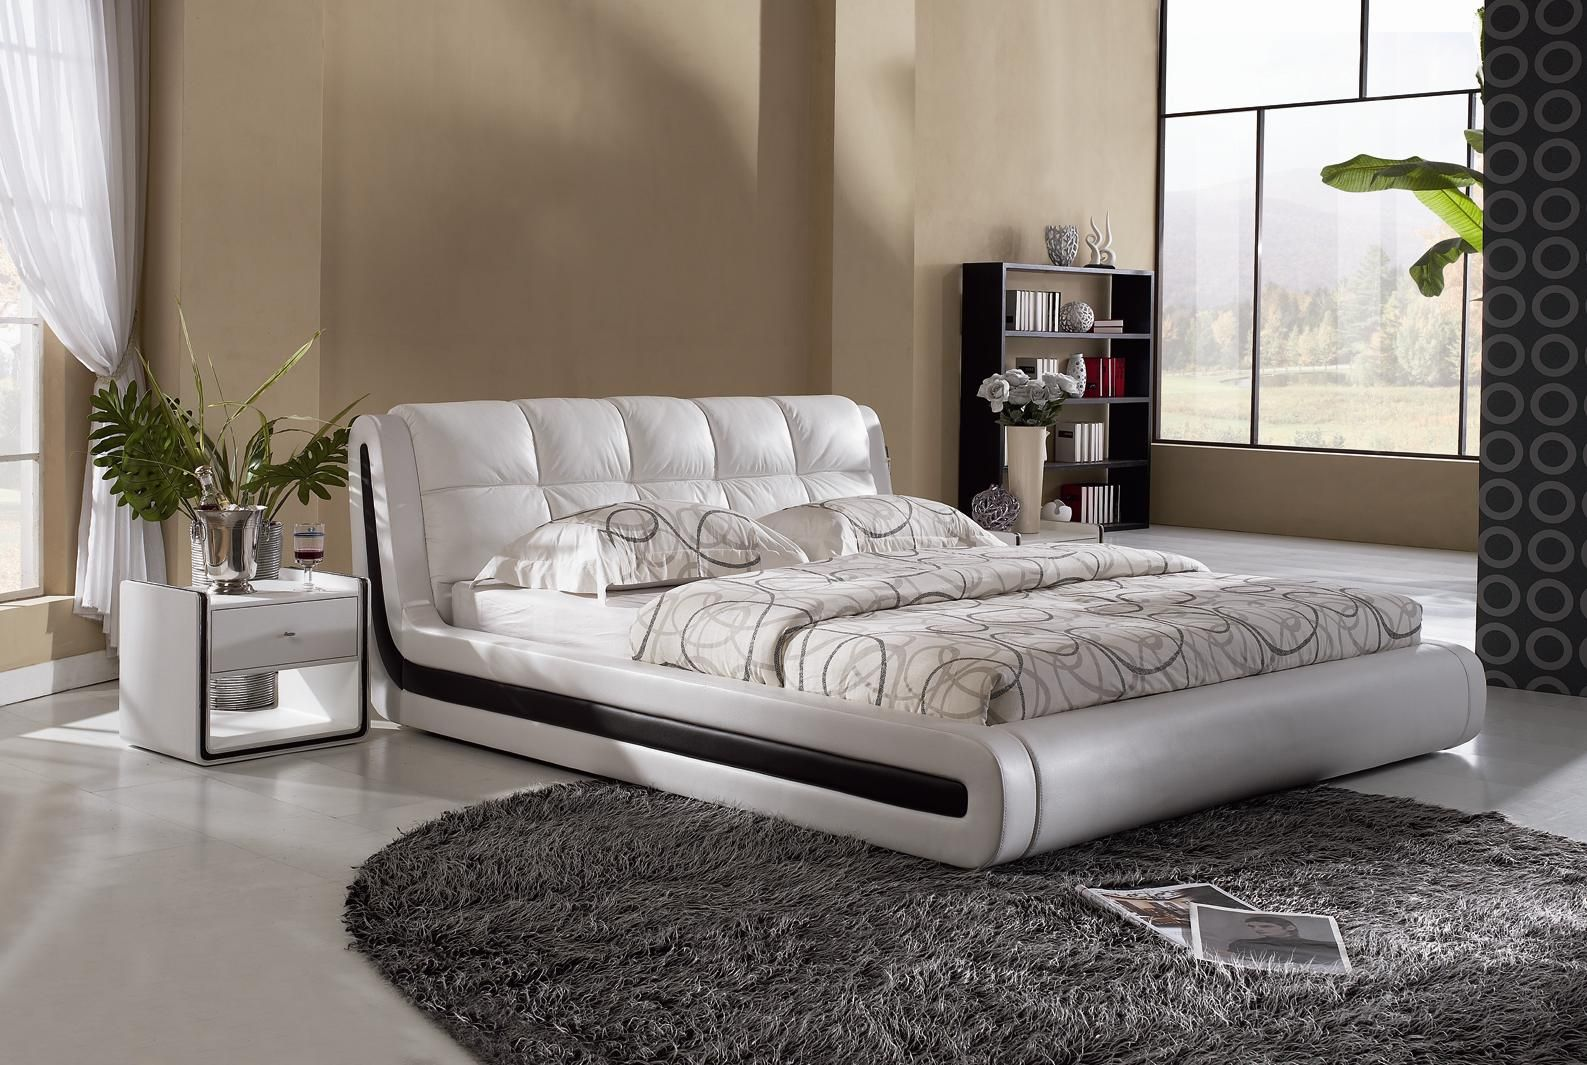 Modern Bed Designs Home Interior Designer Adult Bedroom